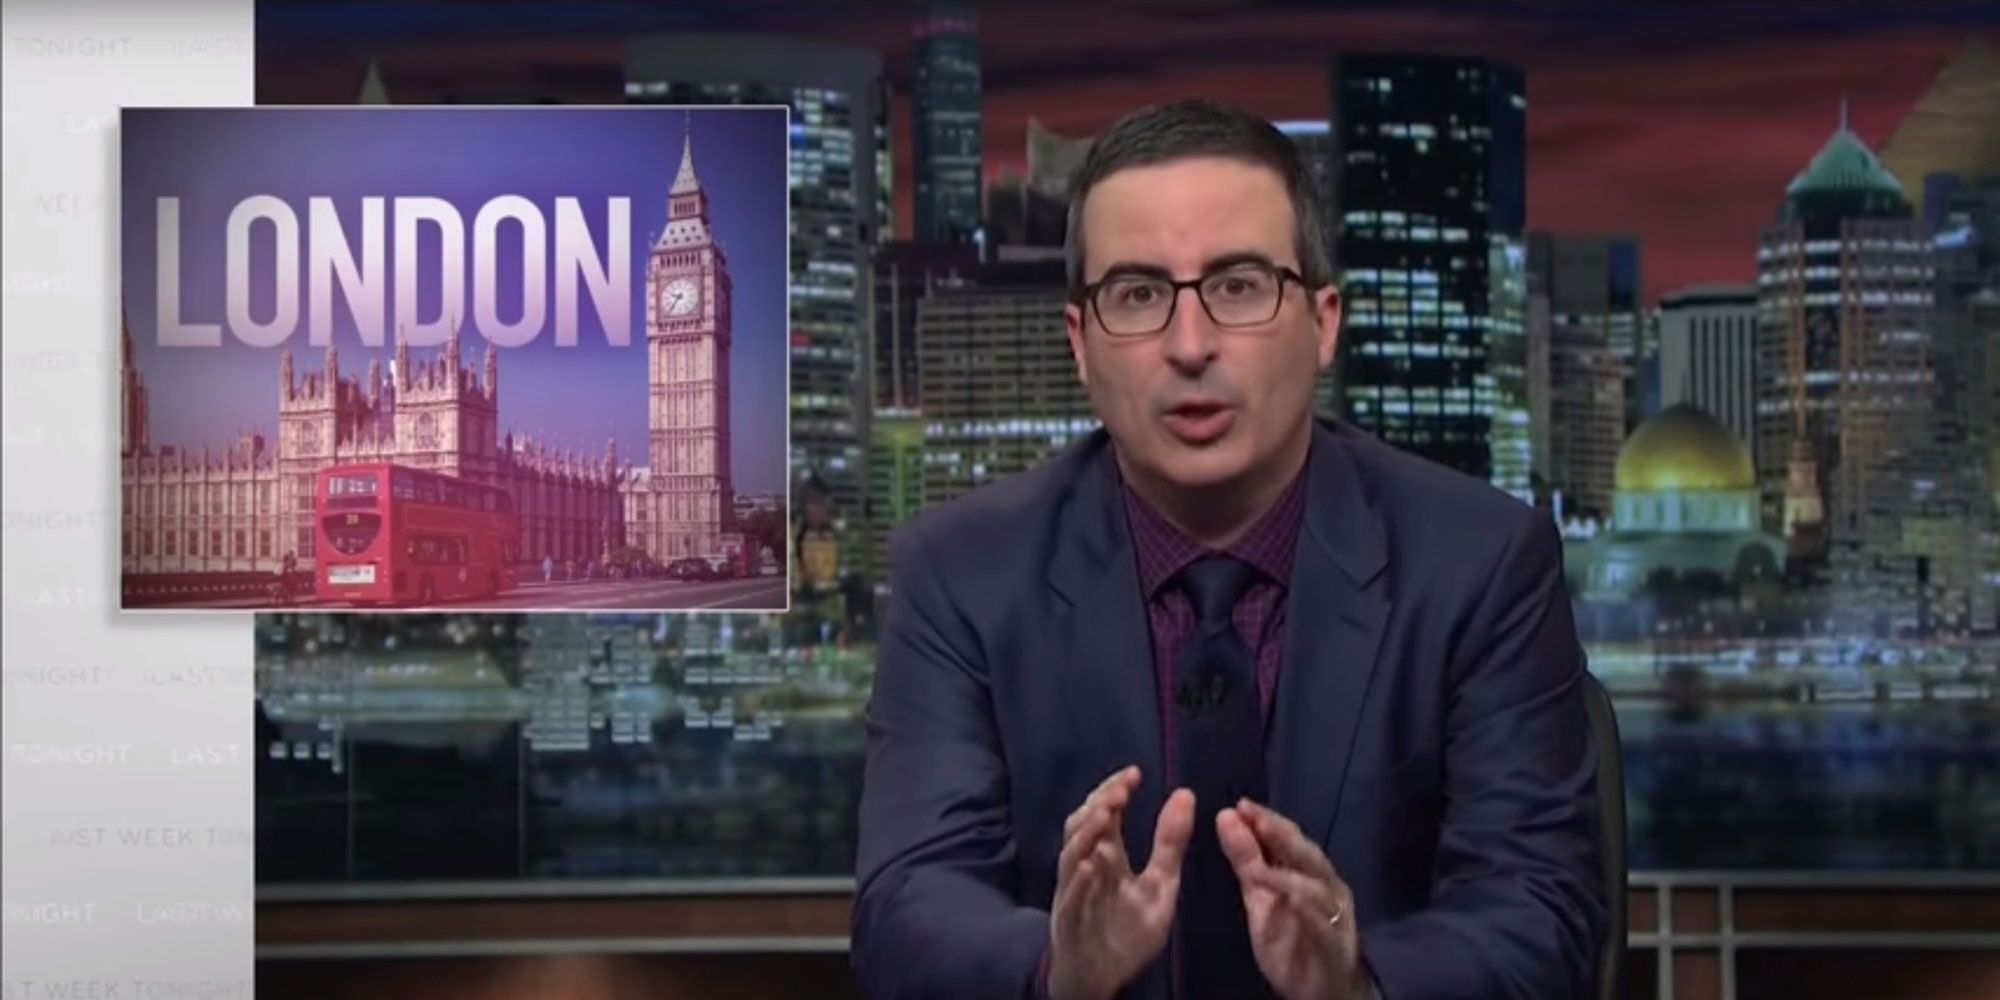 US TV host John Oliver berates American media for their coverage of London terror attack